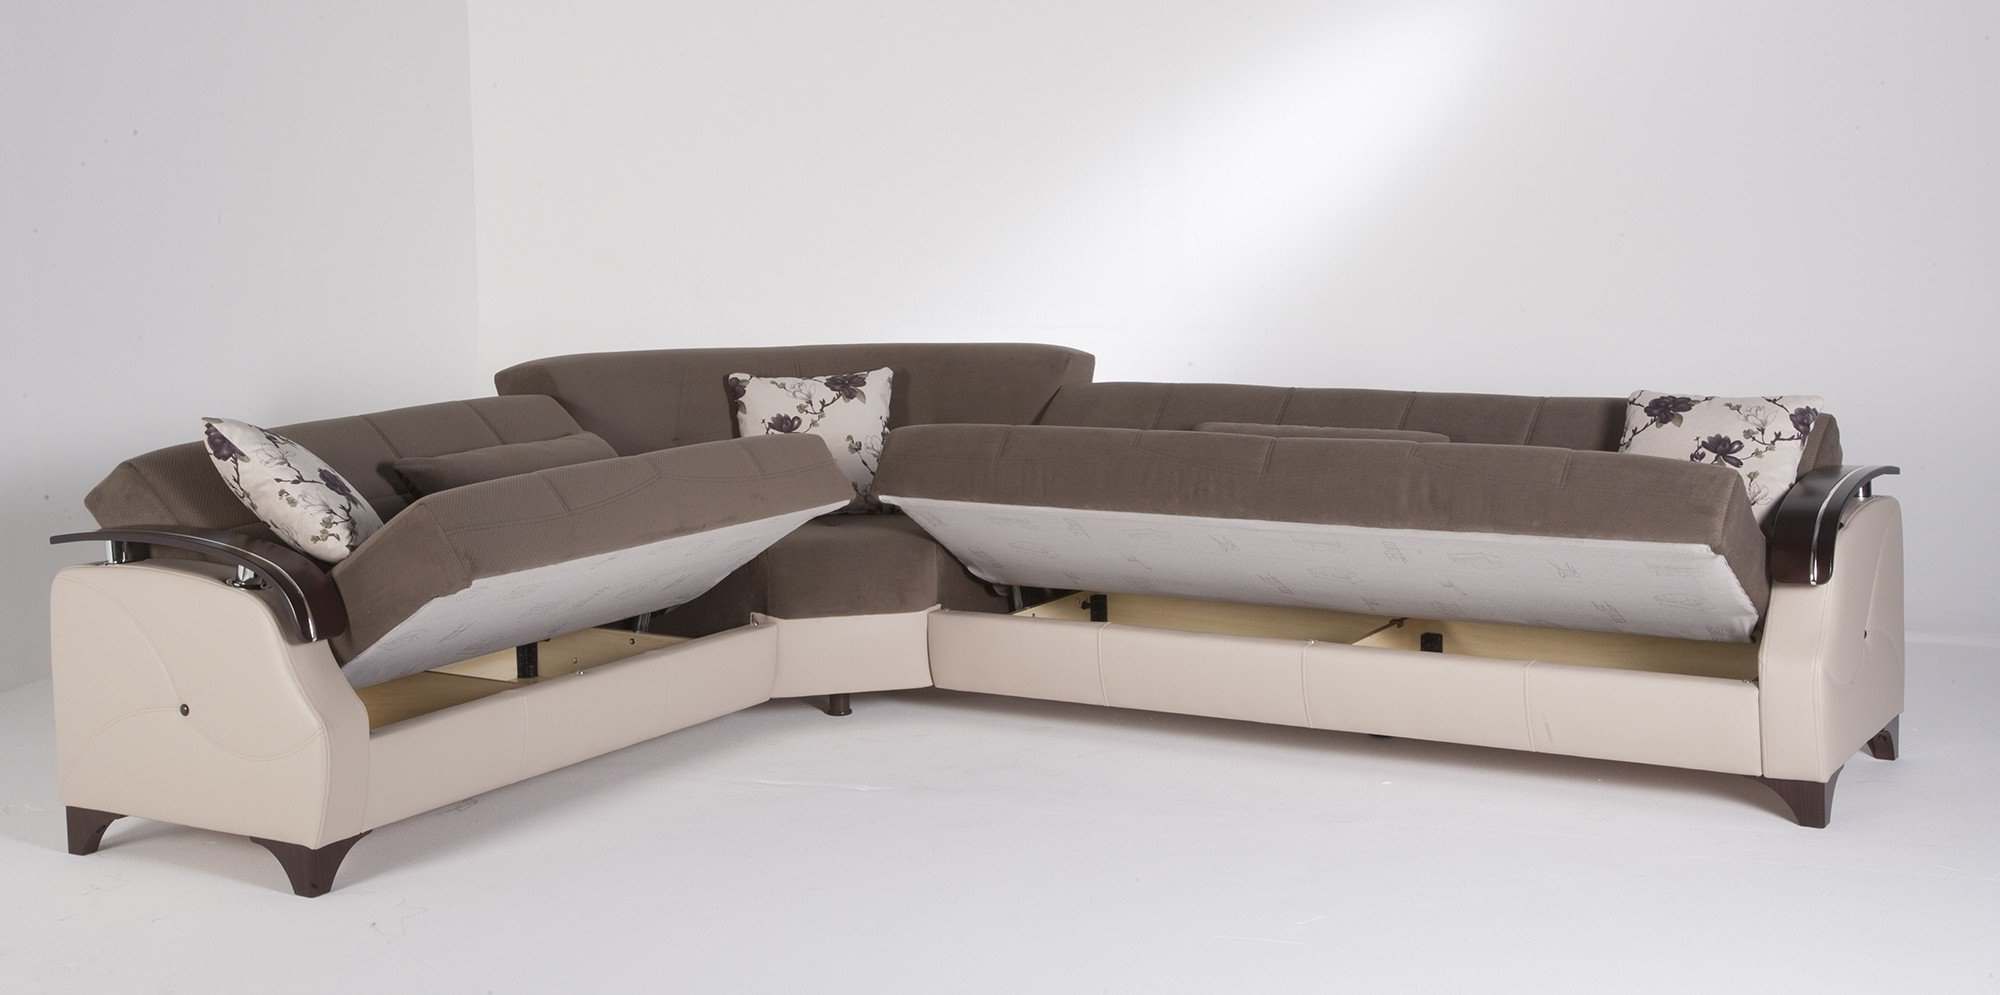 Sofas Cheap Sofa Sleepers Sleeper Sectional Sofa Comfortable With For Popular Sectional Sofas With Sleeper (View 15 of 20)